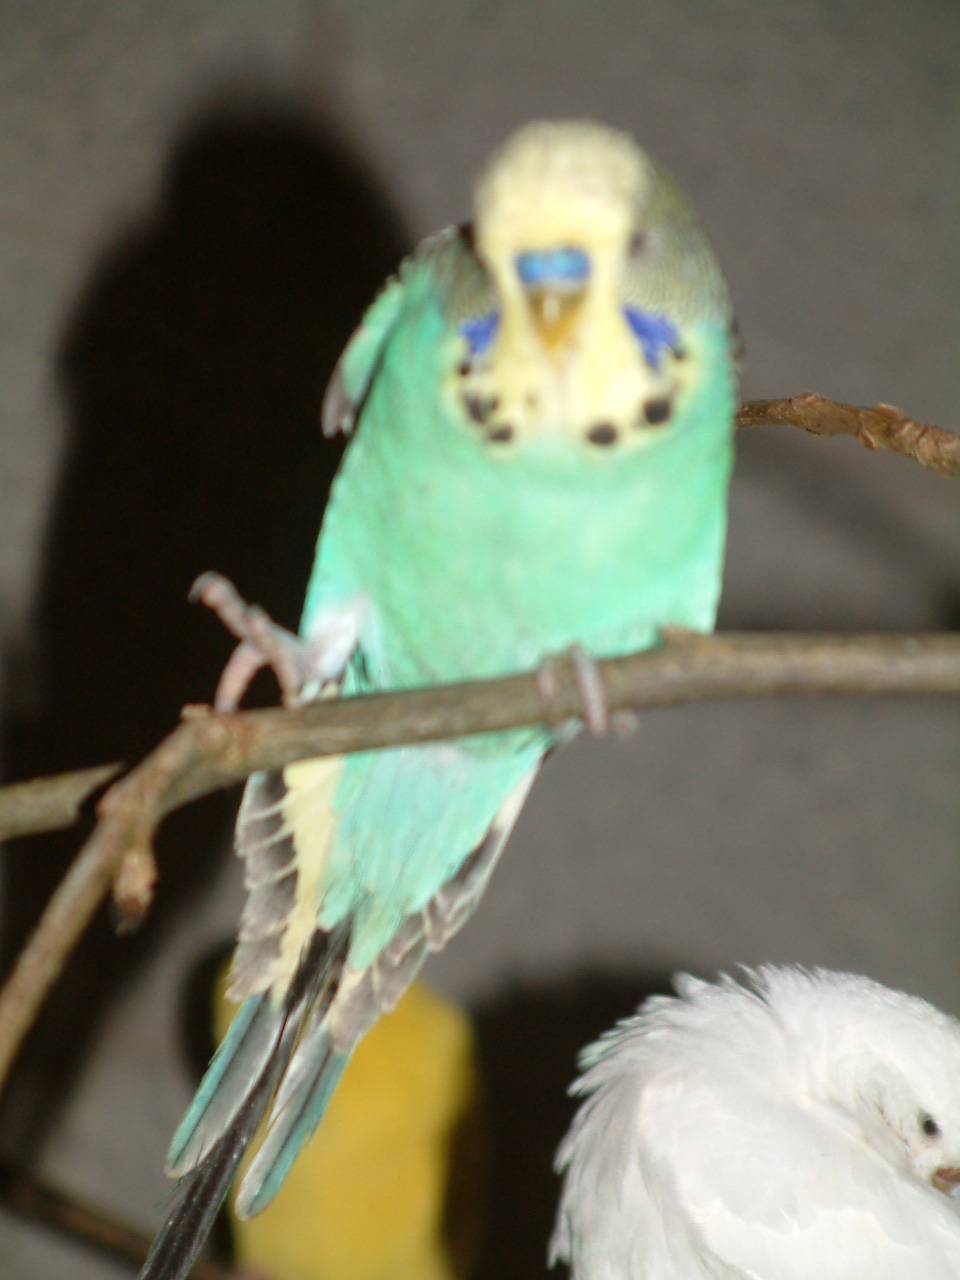 Petes budgie